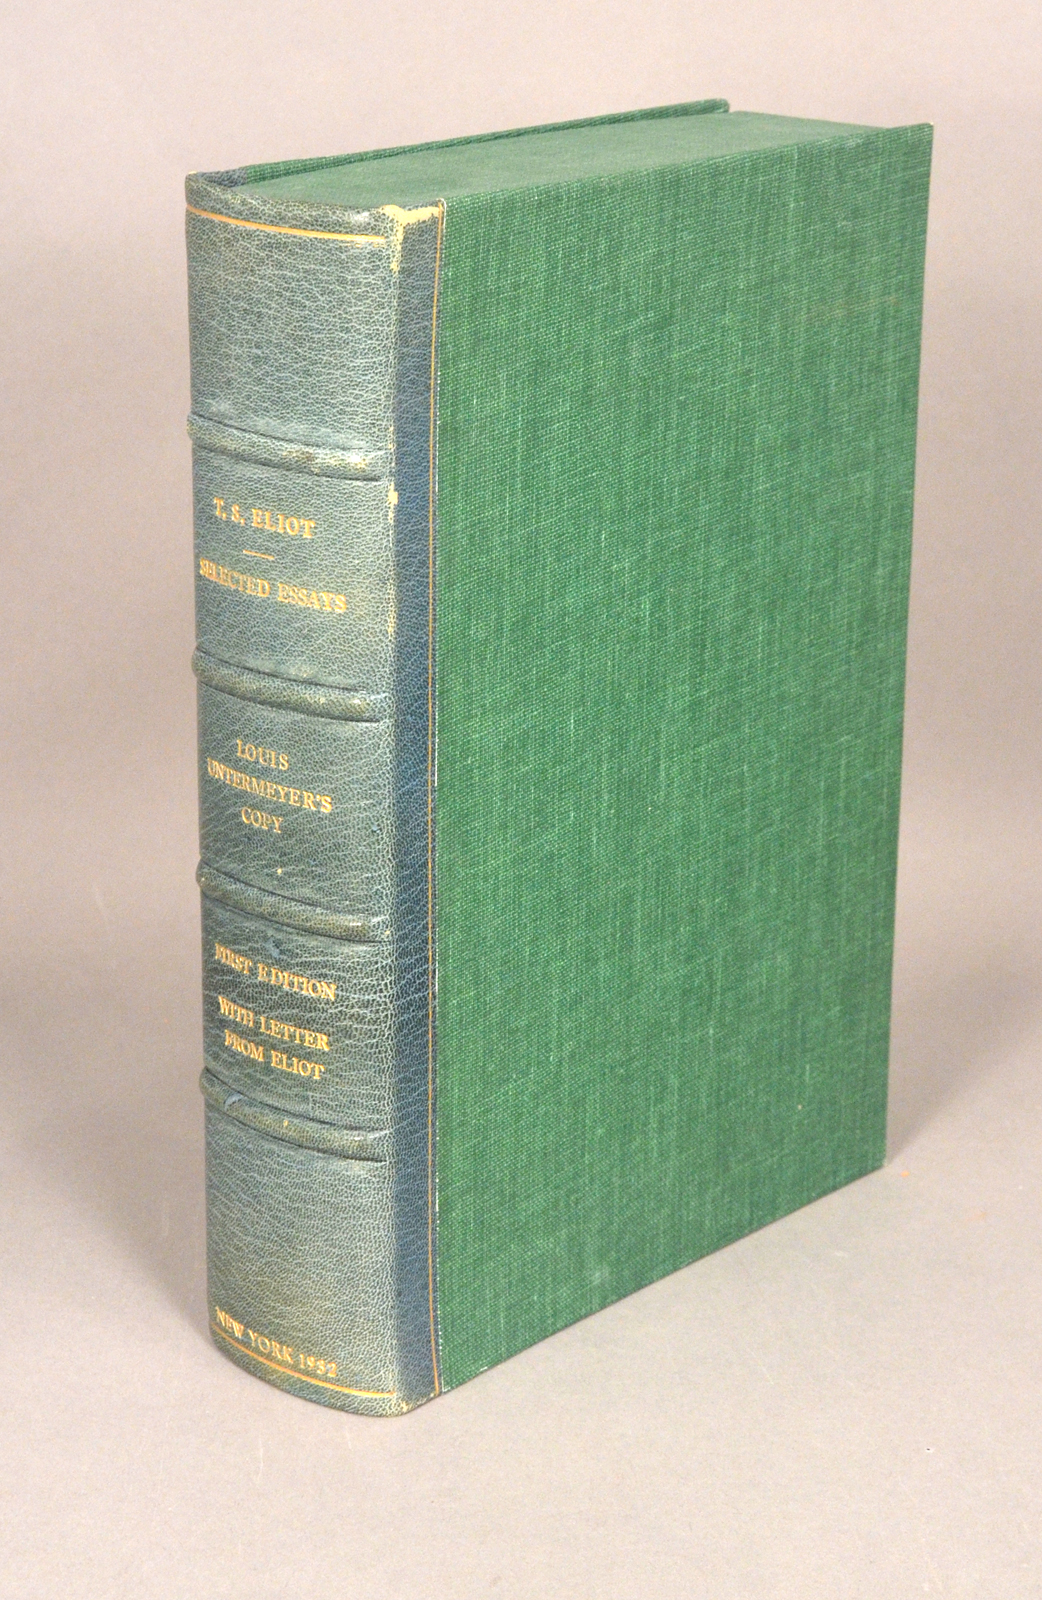 ELIOT, T. S. - Selected Essays 1917-1932